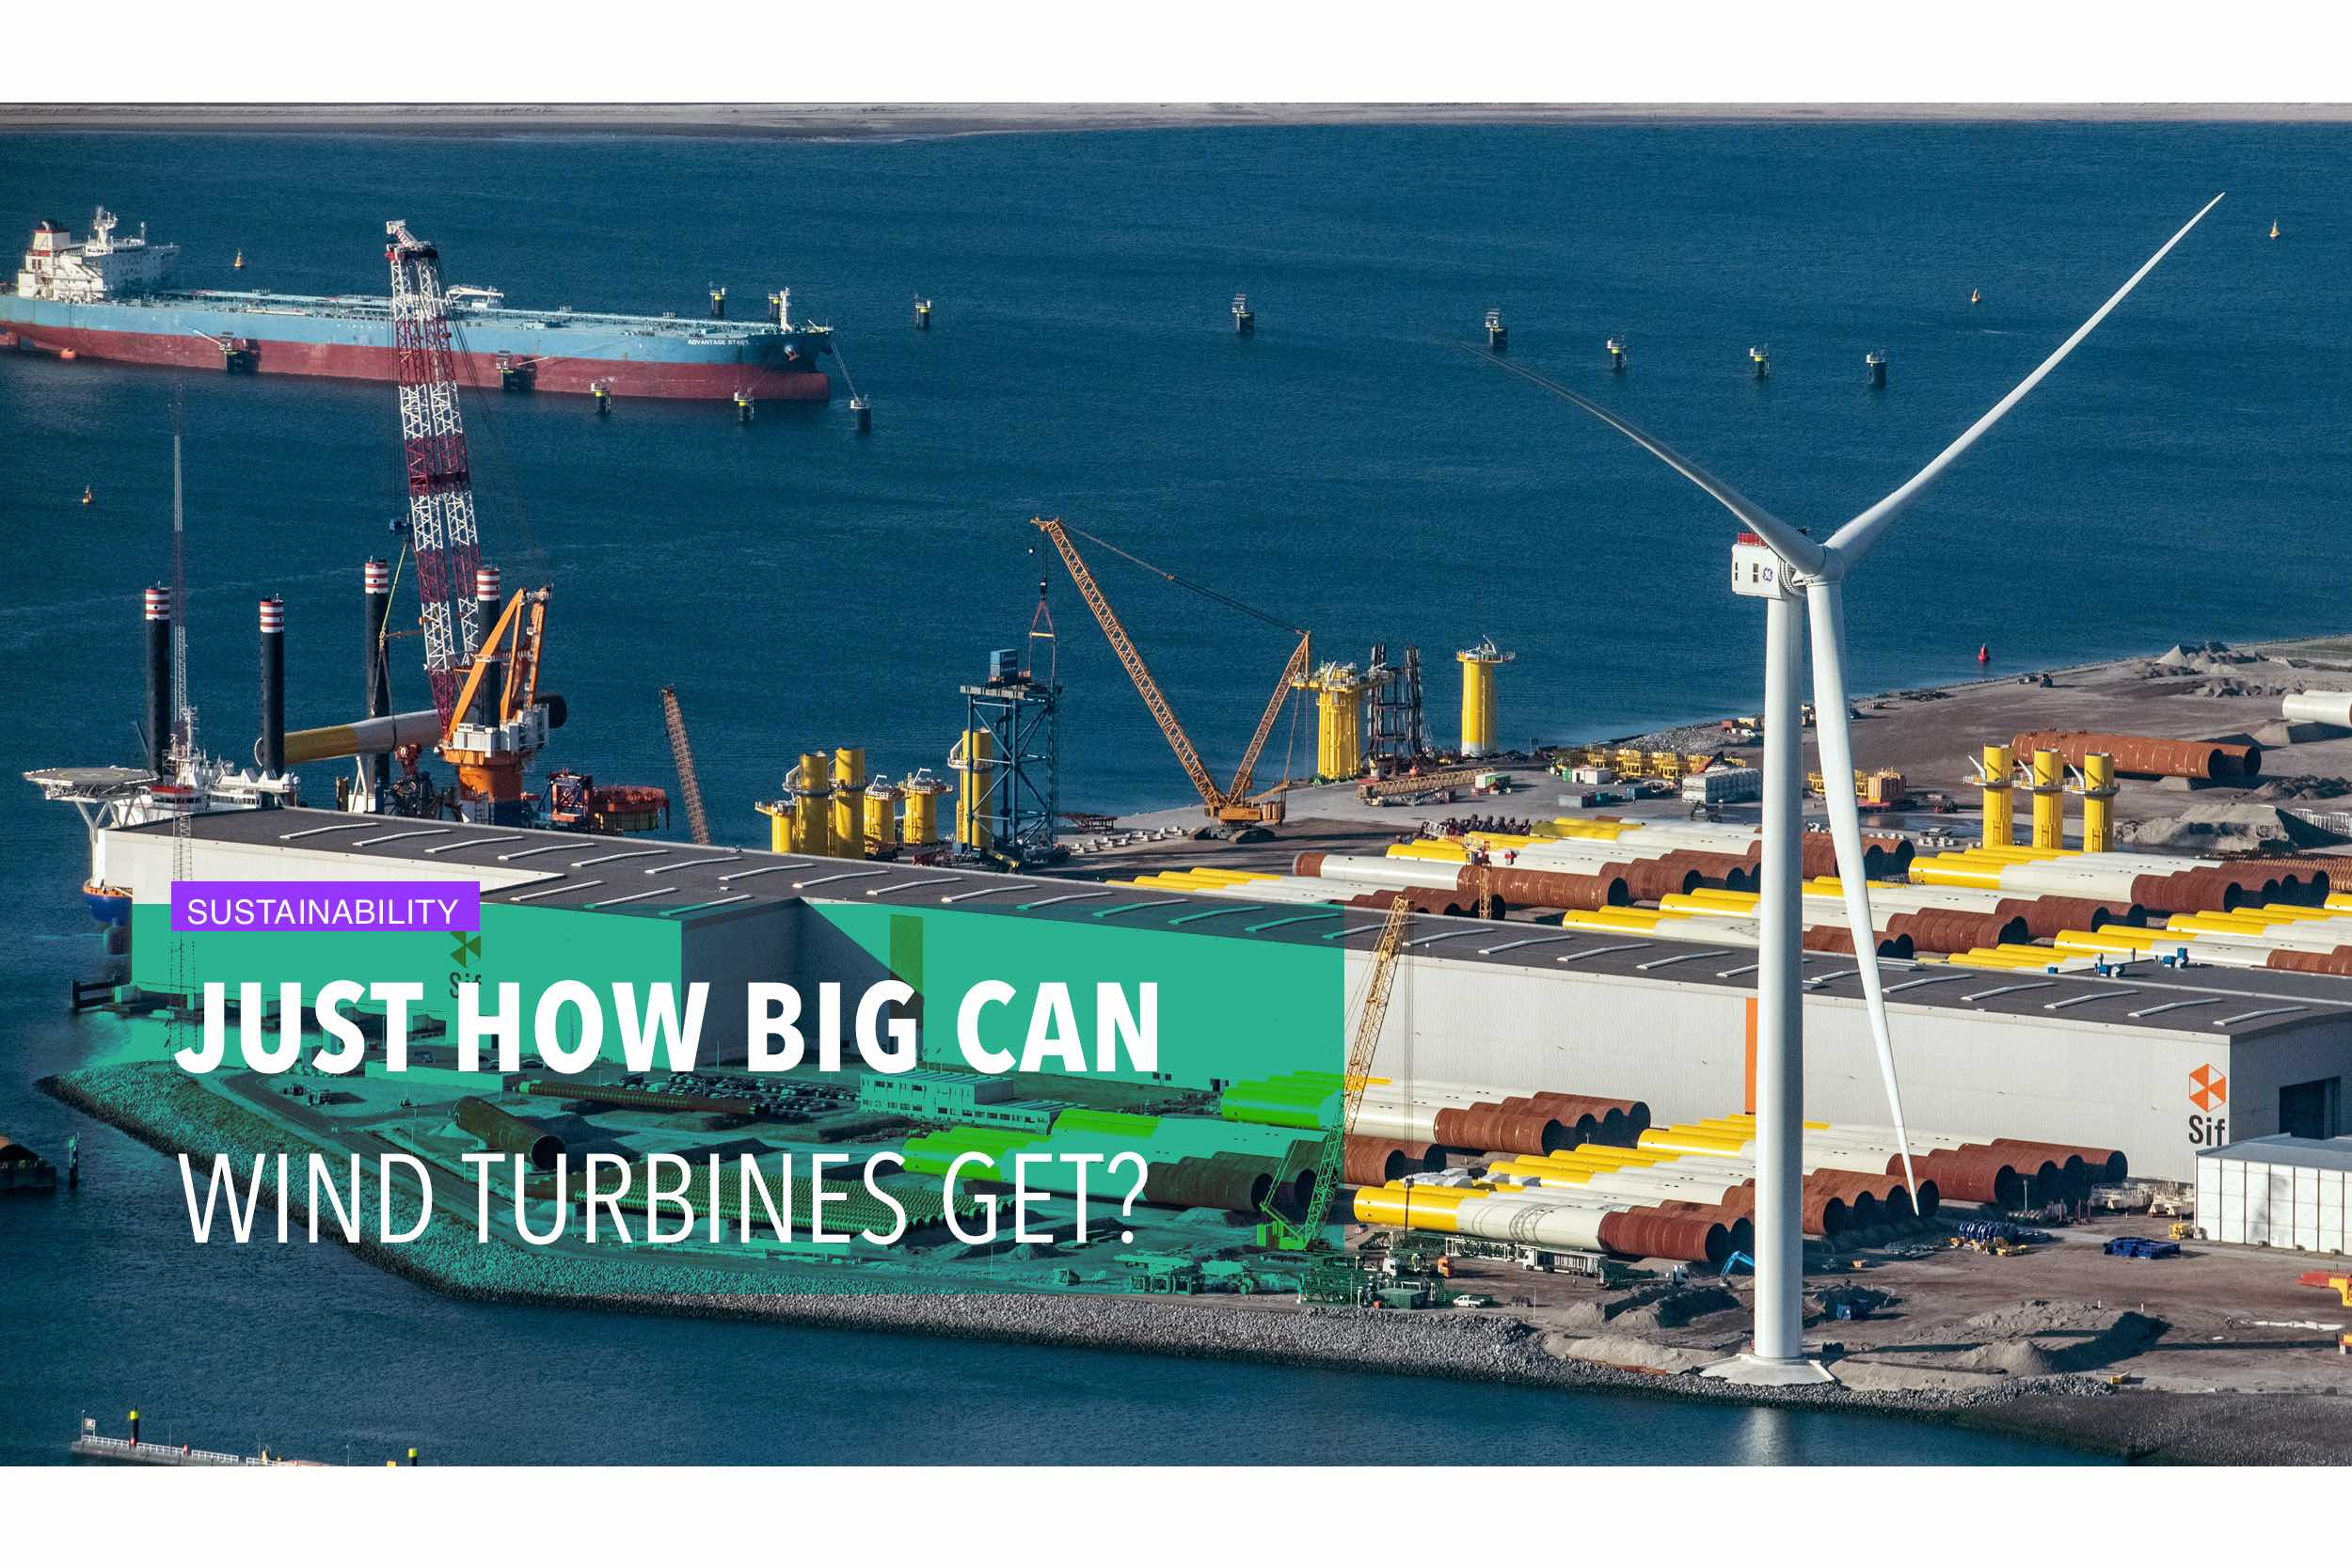 Just how big can wind turbines get?